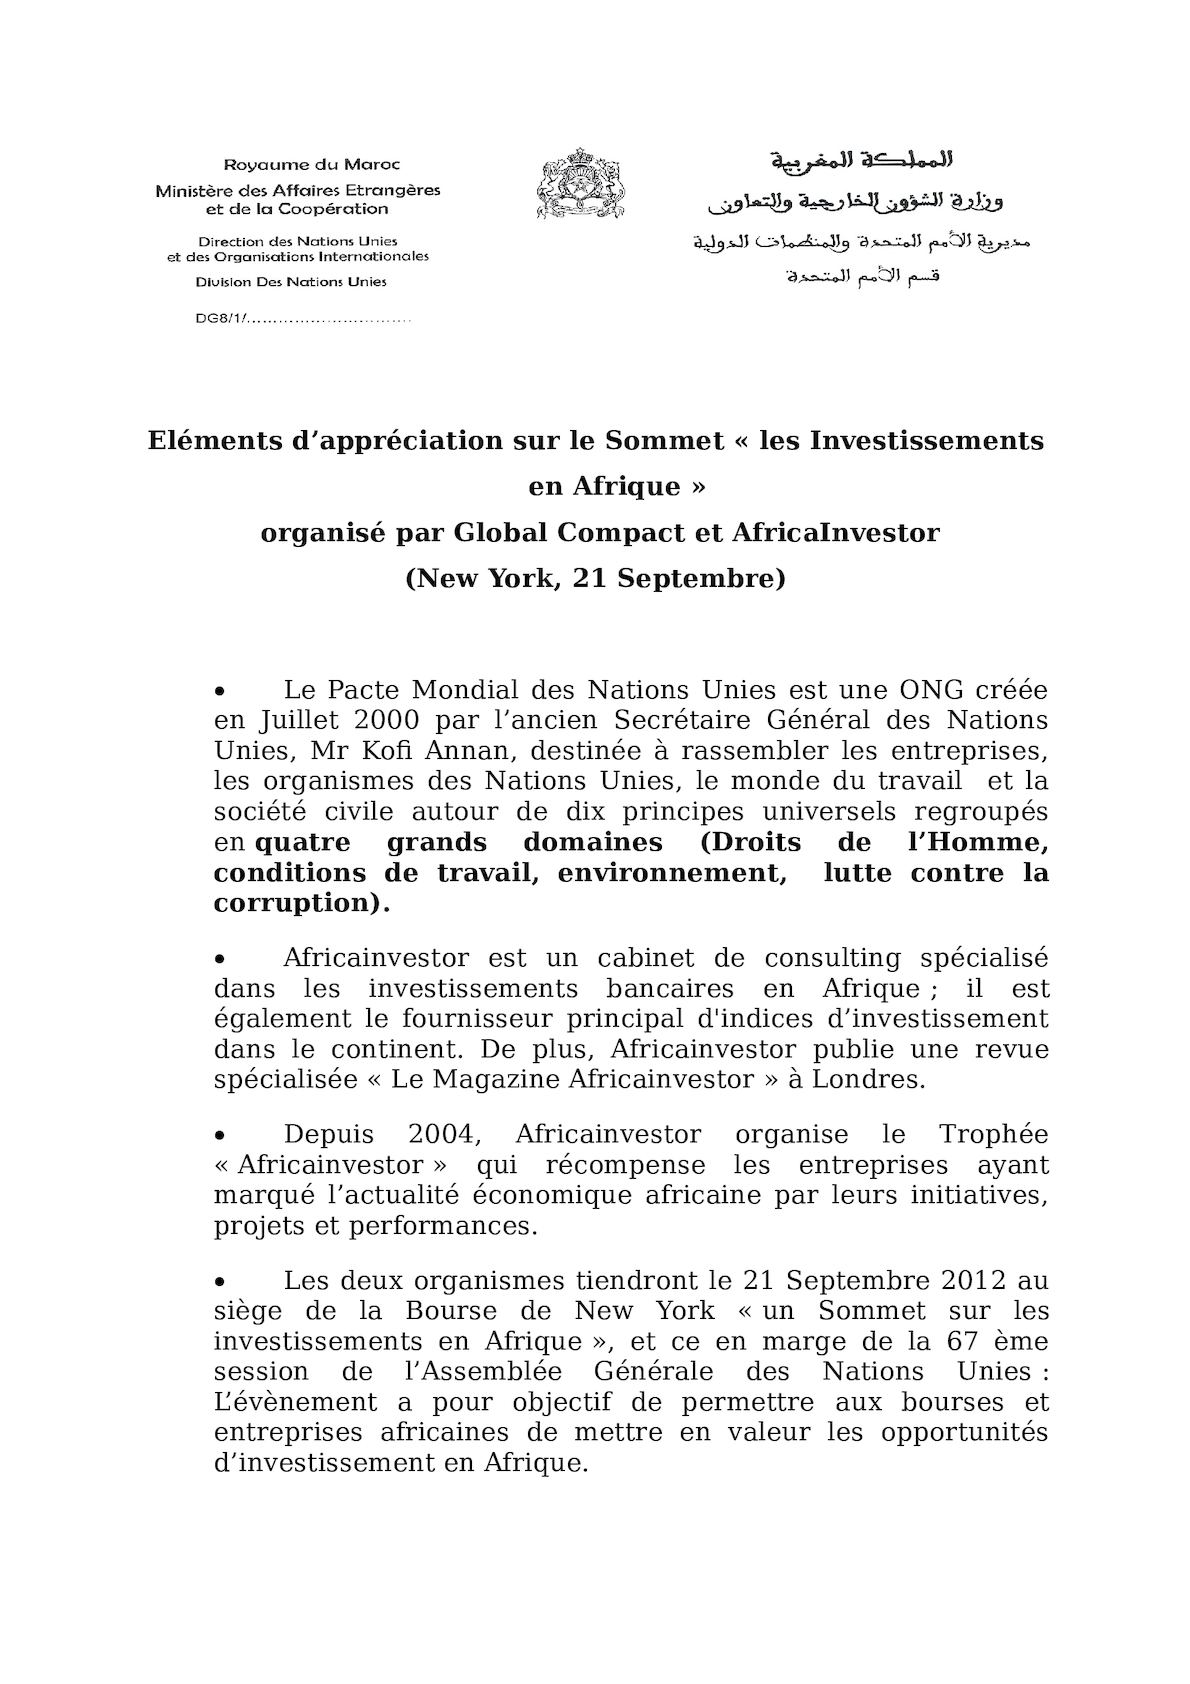 Eléments D'appréciation Global Compact